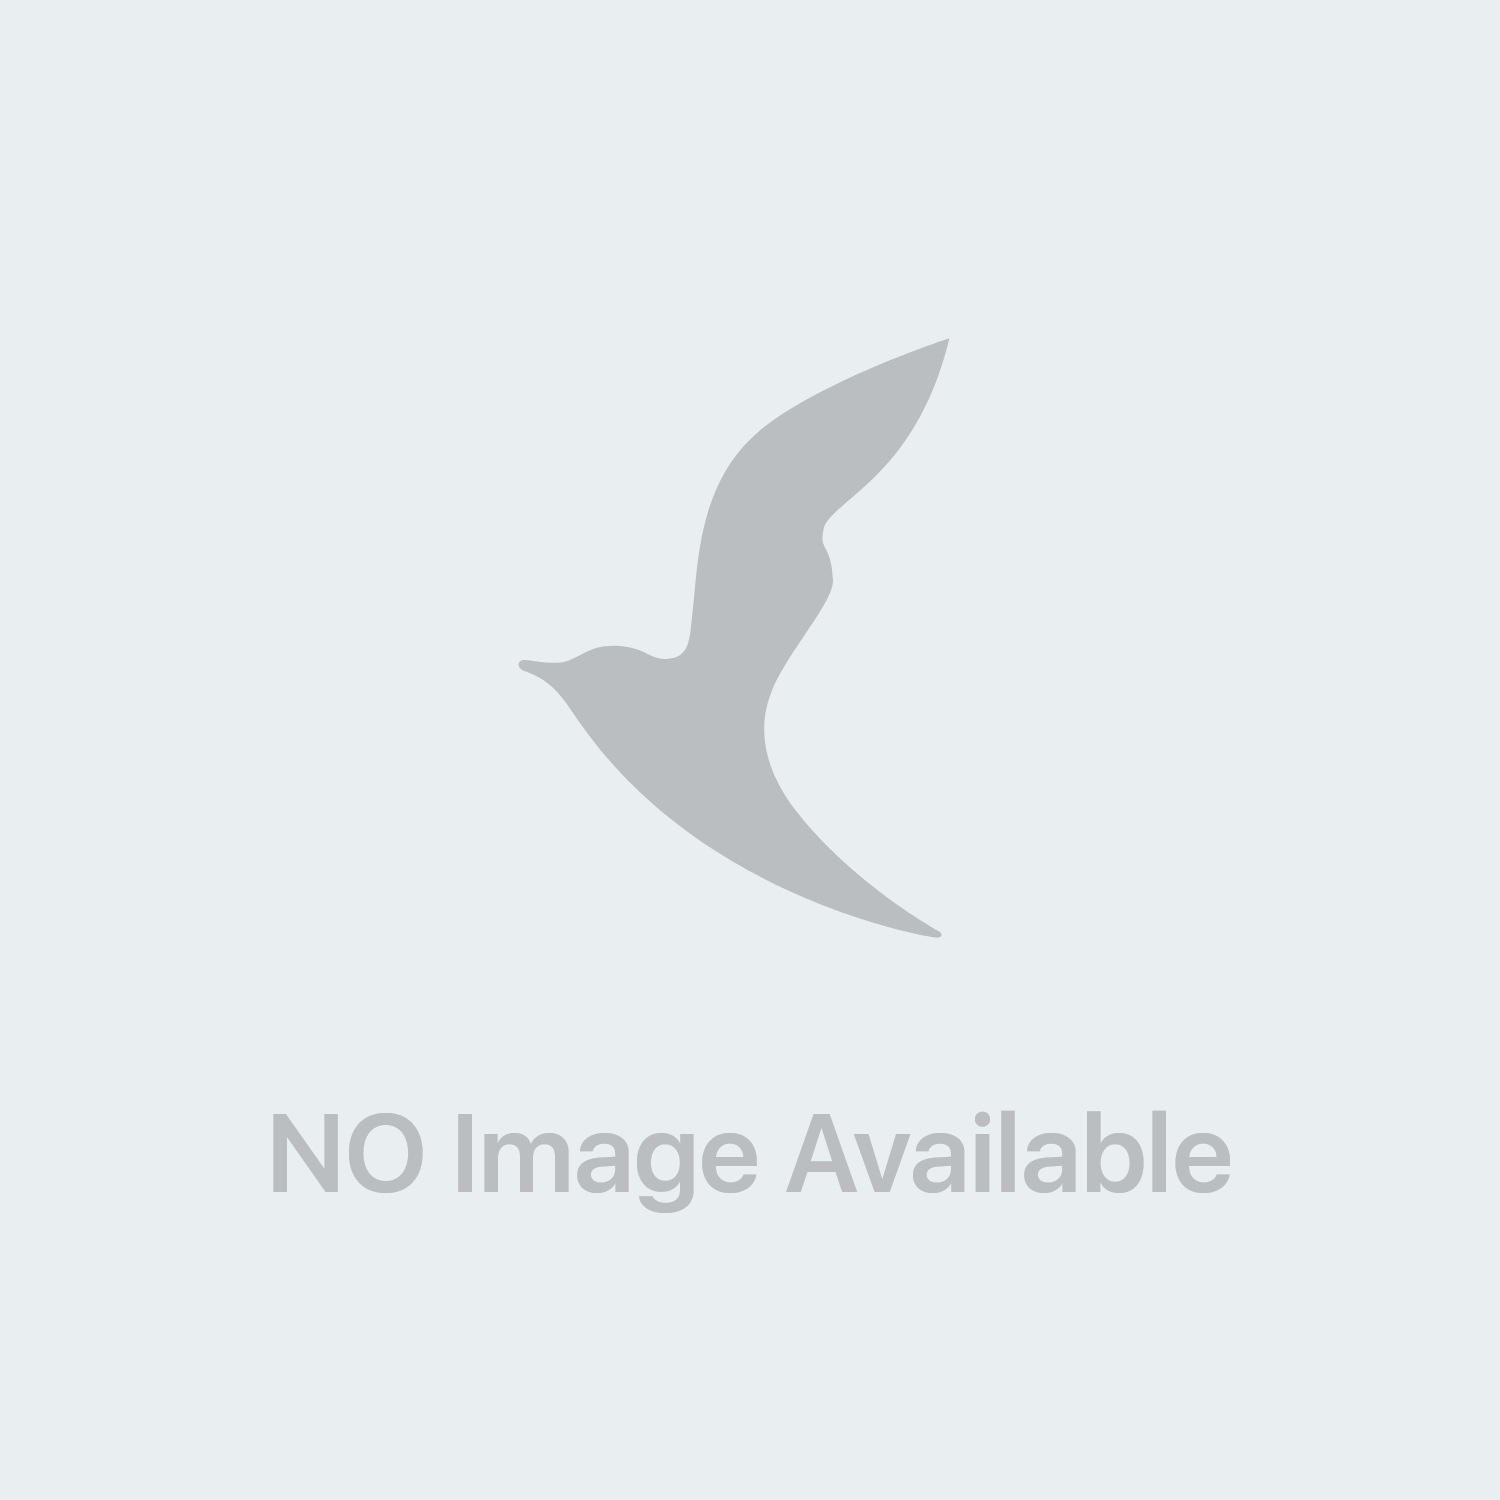 Loacker Heather Fiori Di Bach Gocce 10 Ml